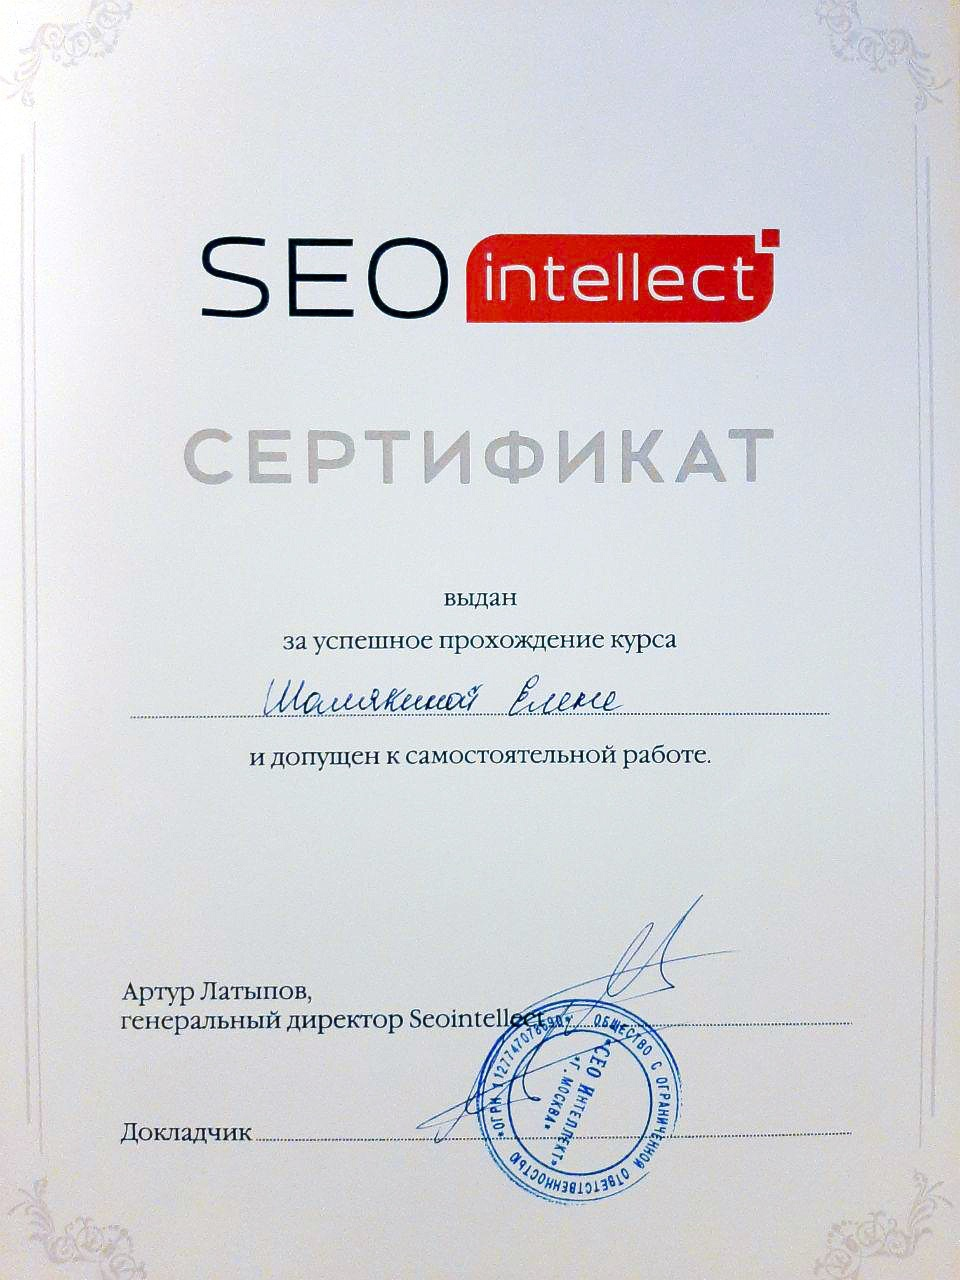 Сертификат SEO intellect